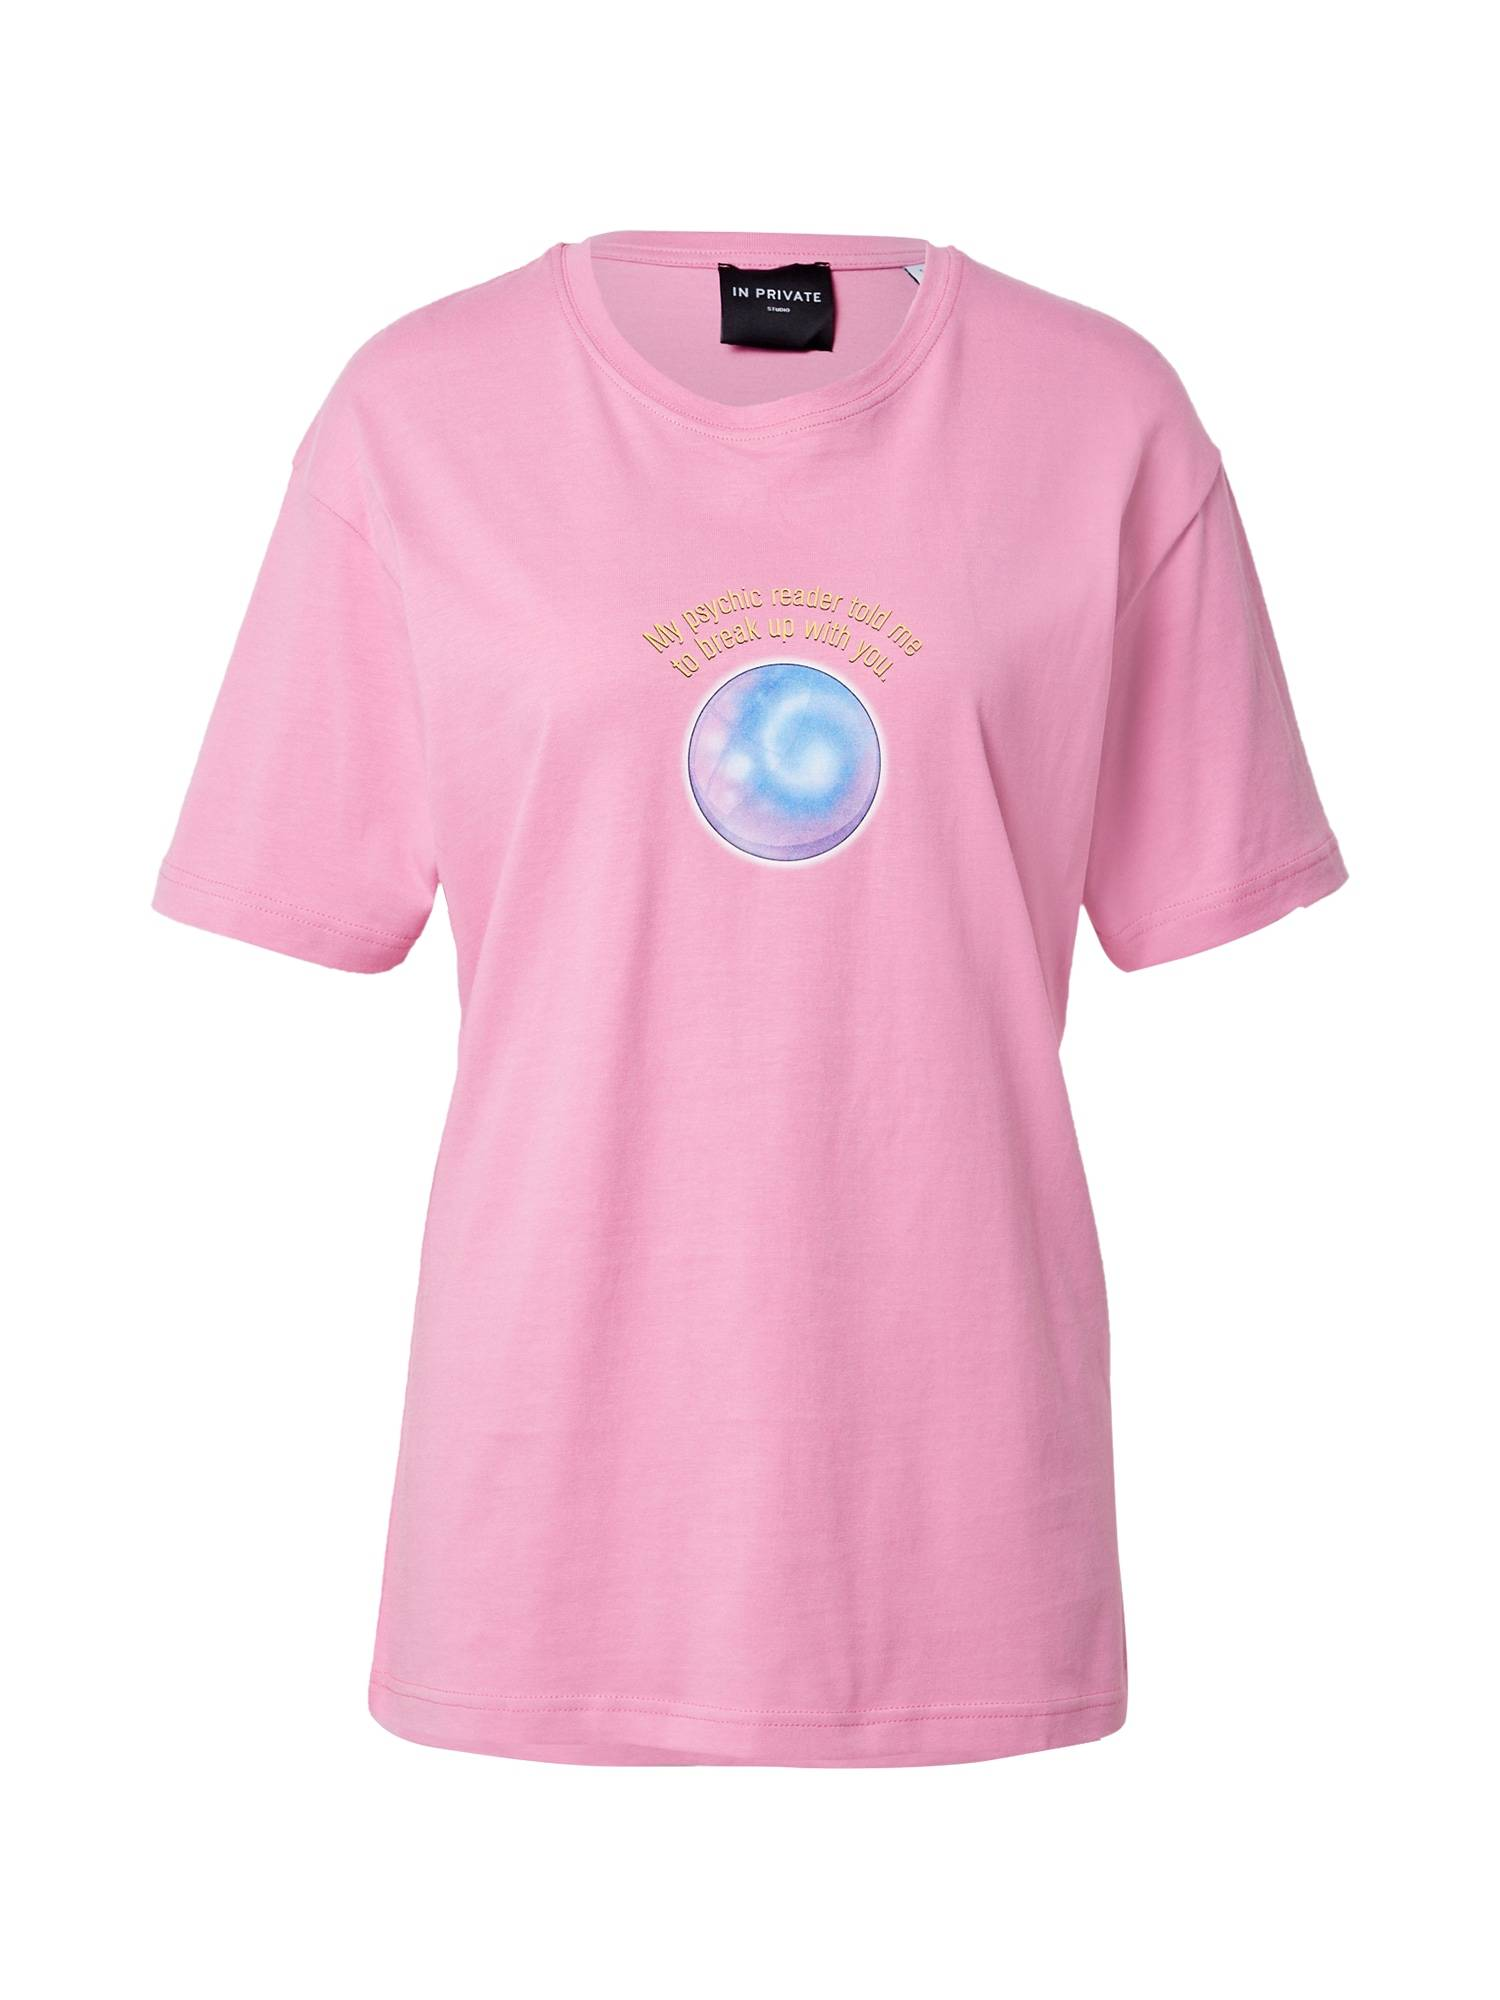 IN PRIVATE Studio T-shirt 'BIANCA'S'  - Rose - Taille: XL - female